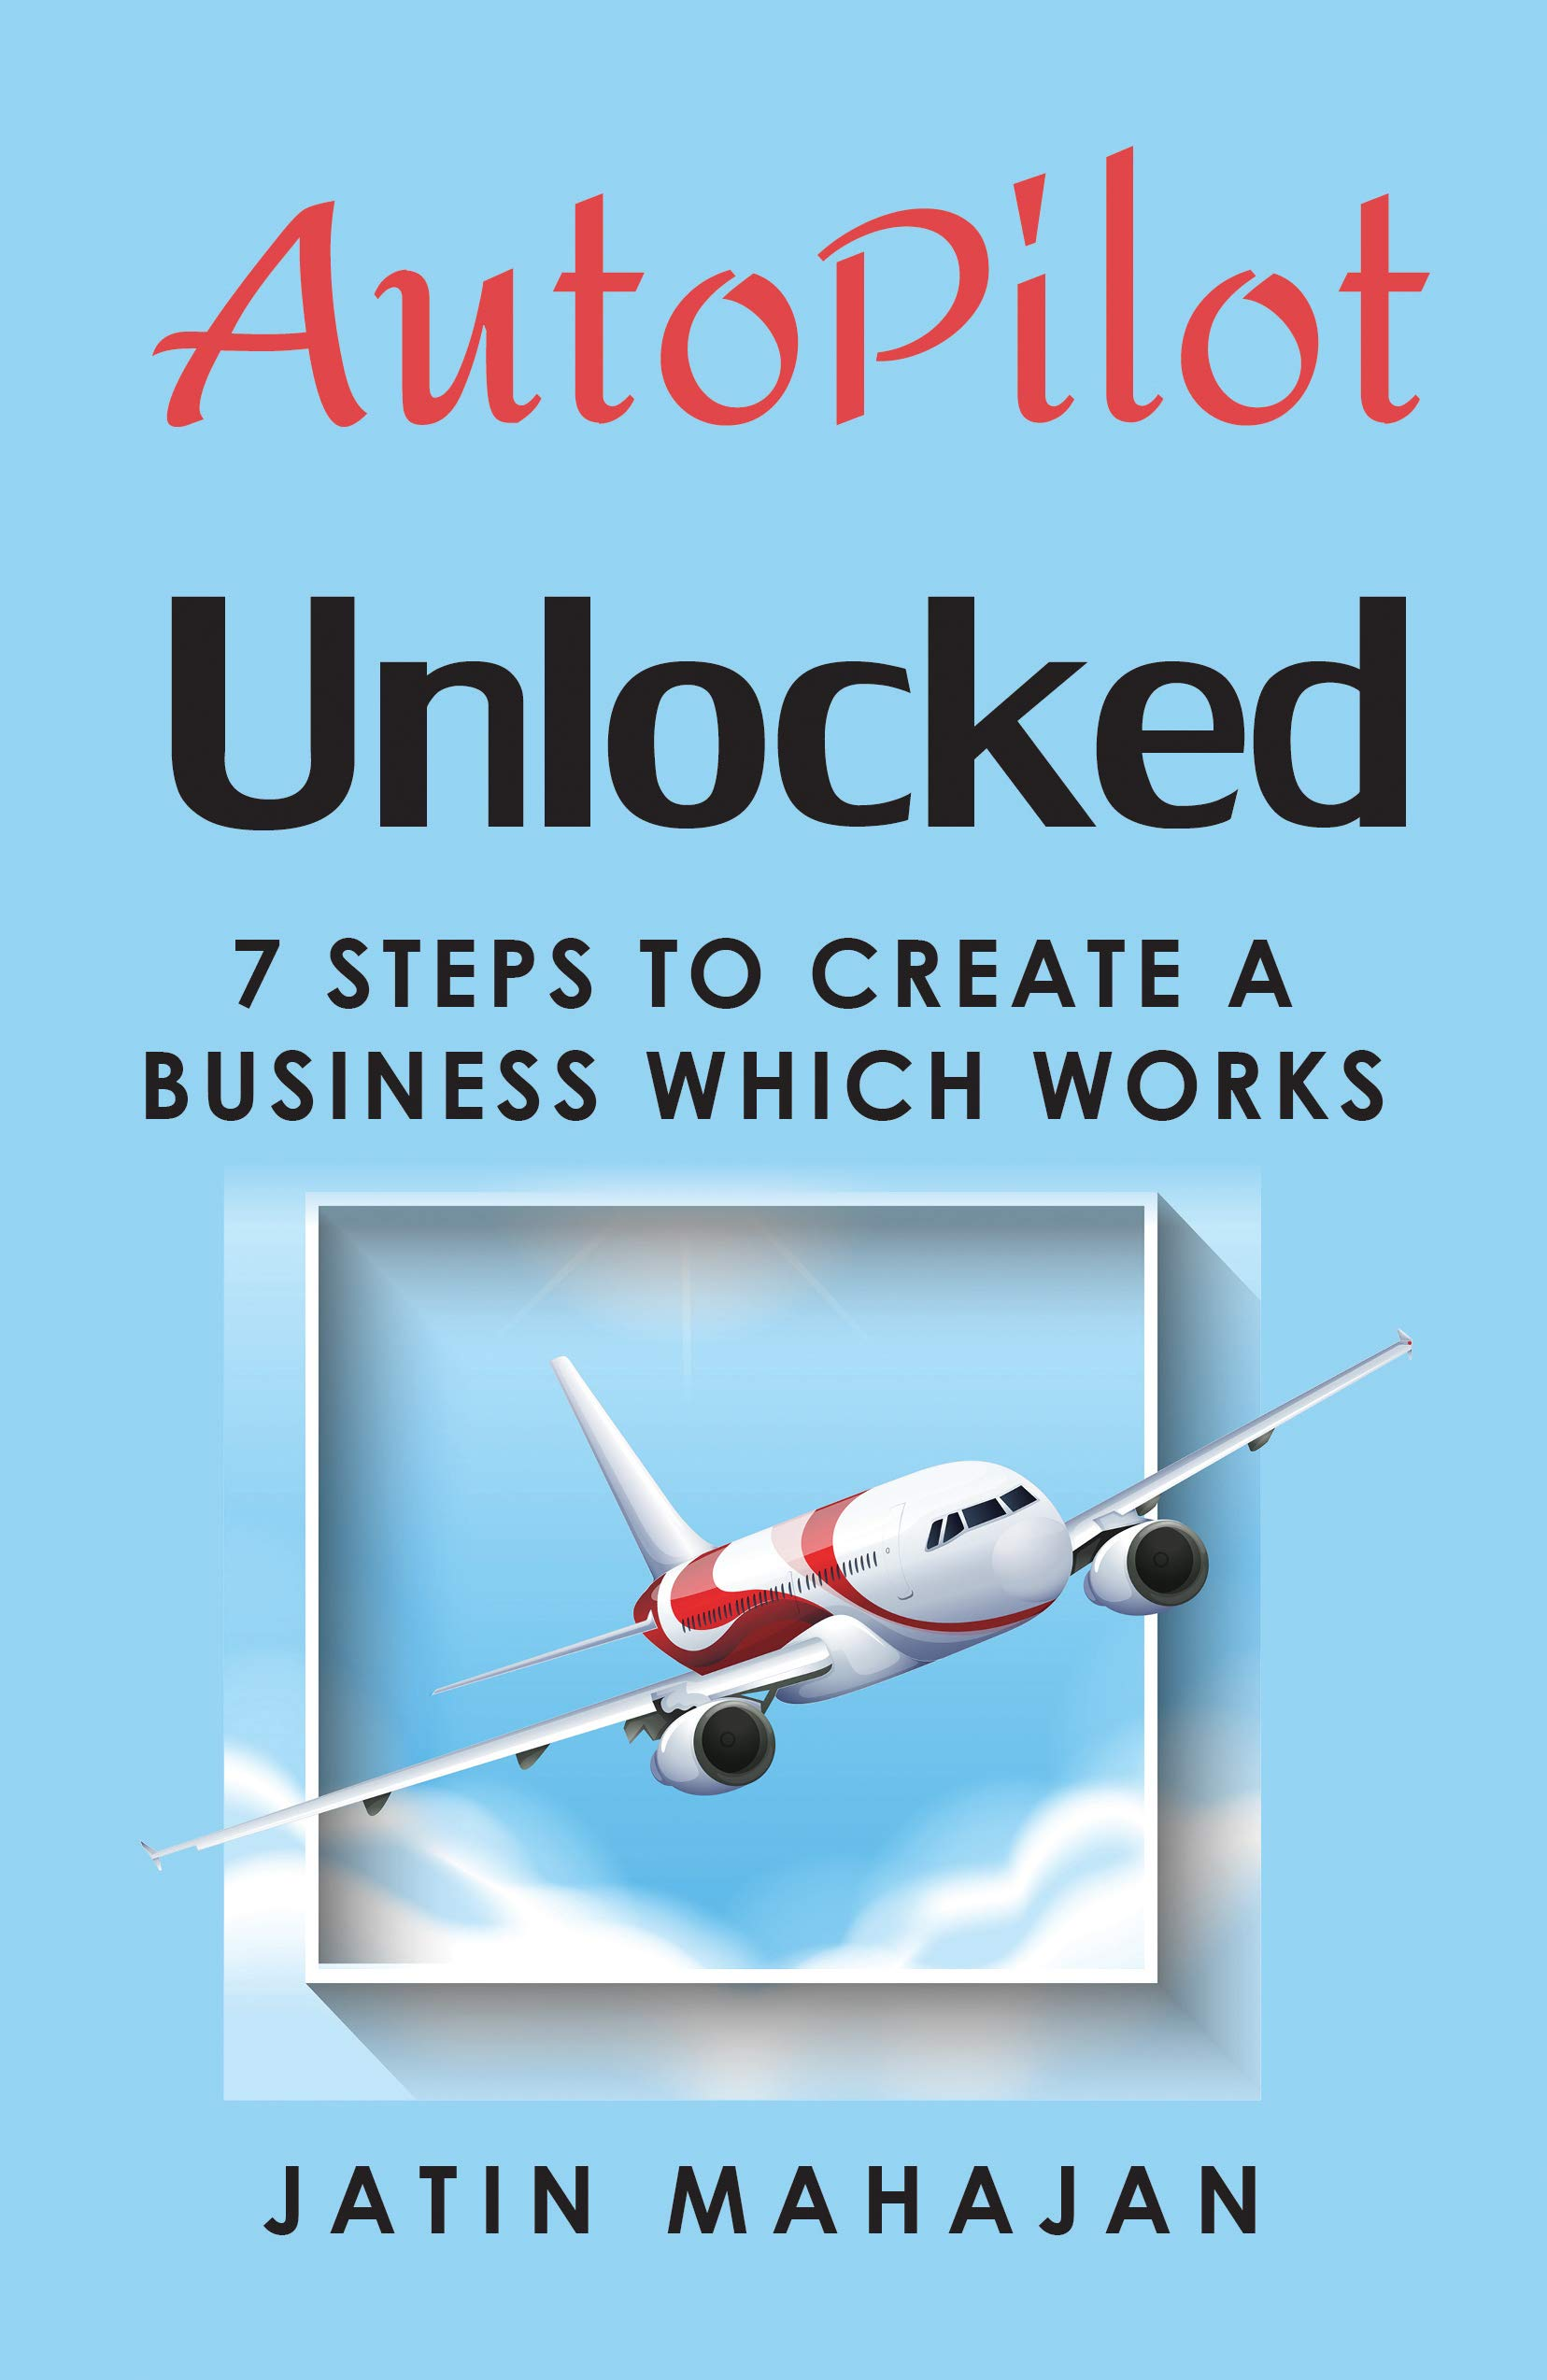 AutoPilot Unlocked: 7 Steps To Create A Business Which Works